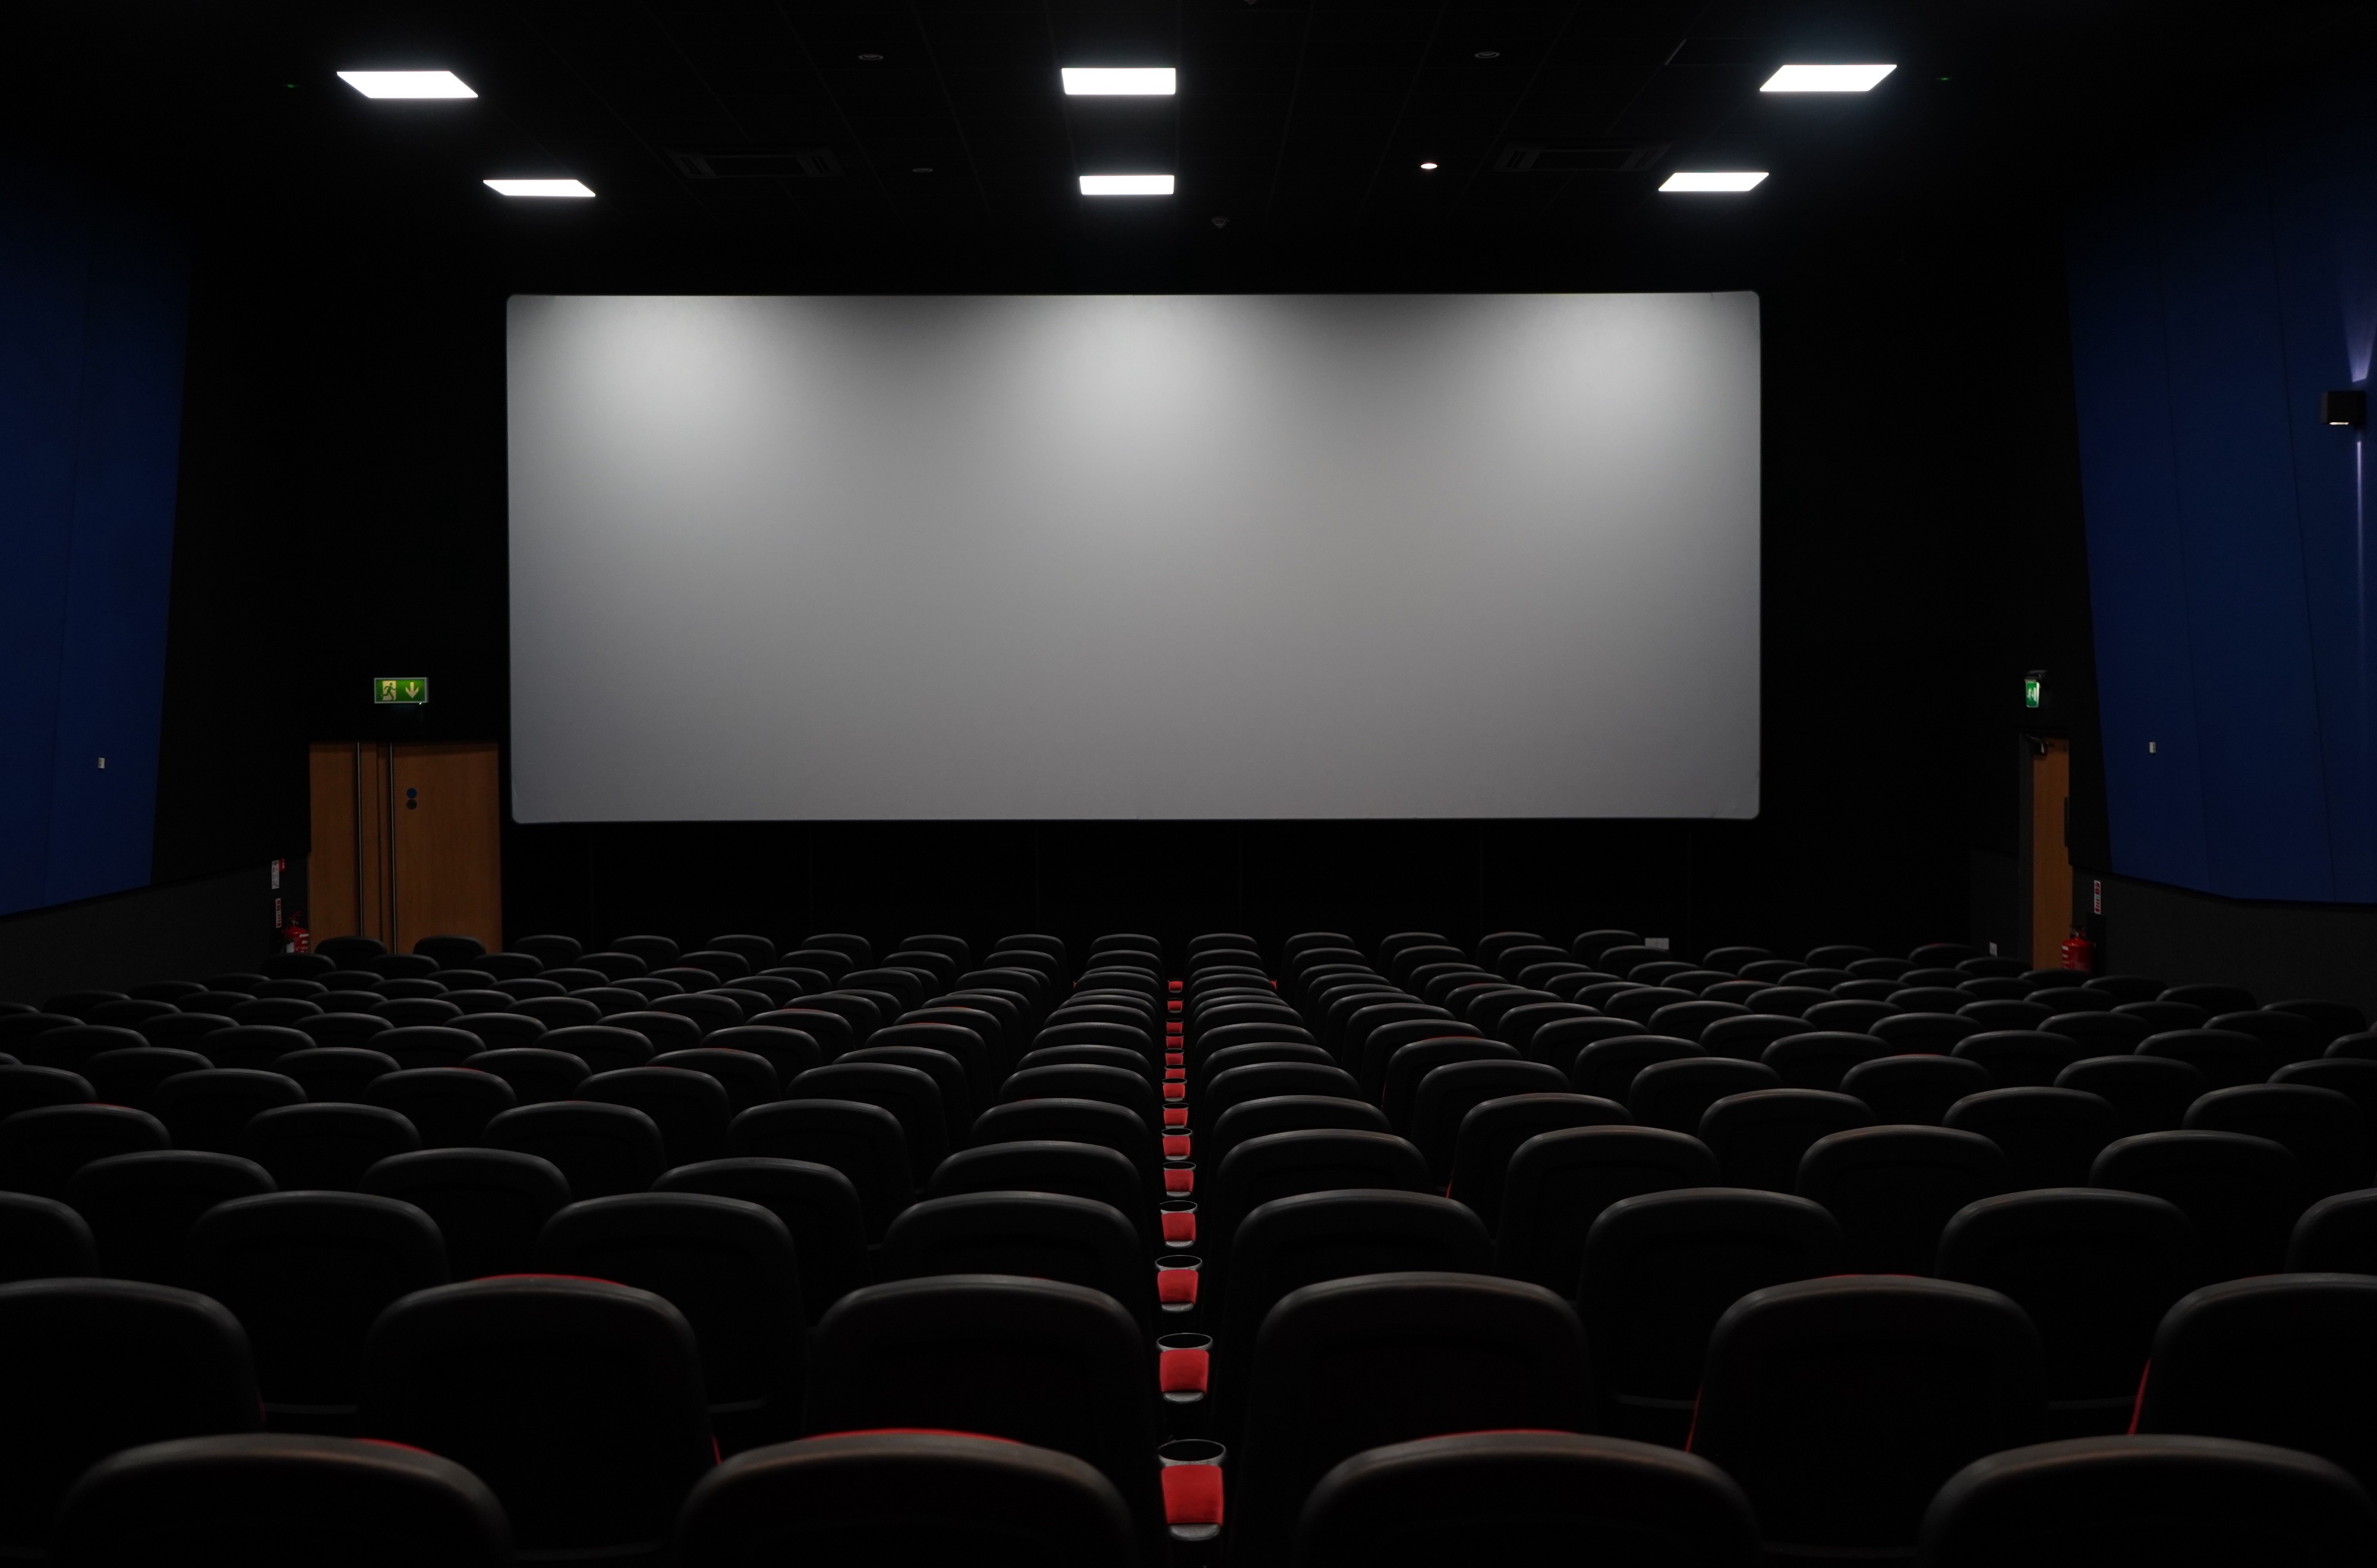 Mark Wahlberg Movies: Empty Theater